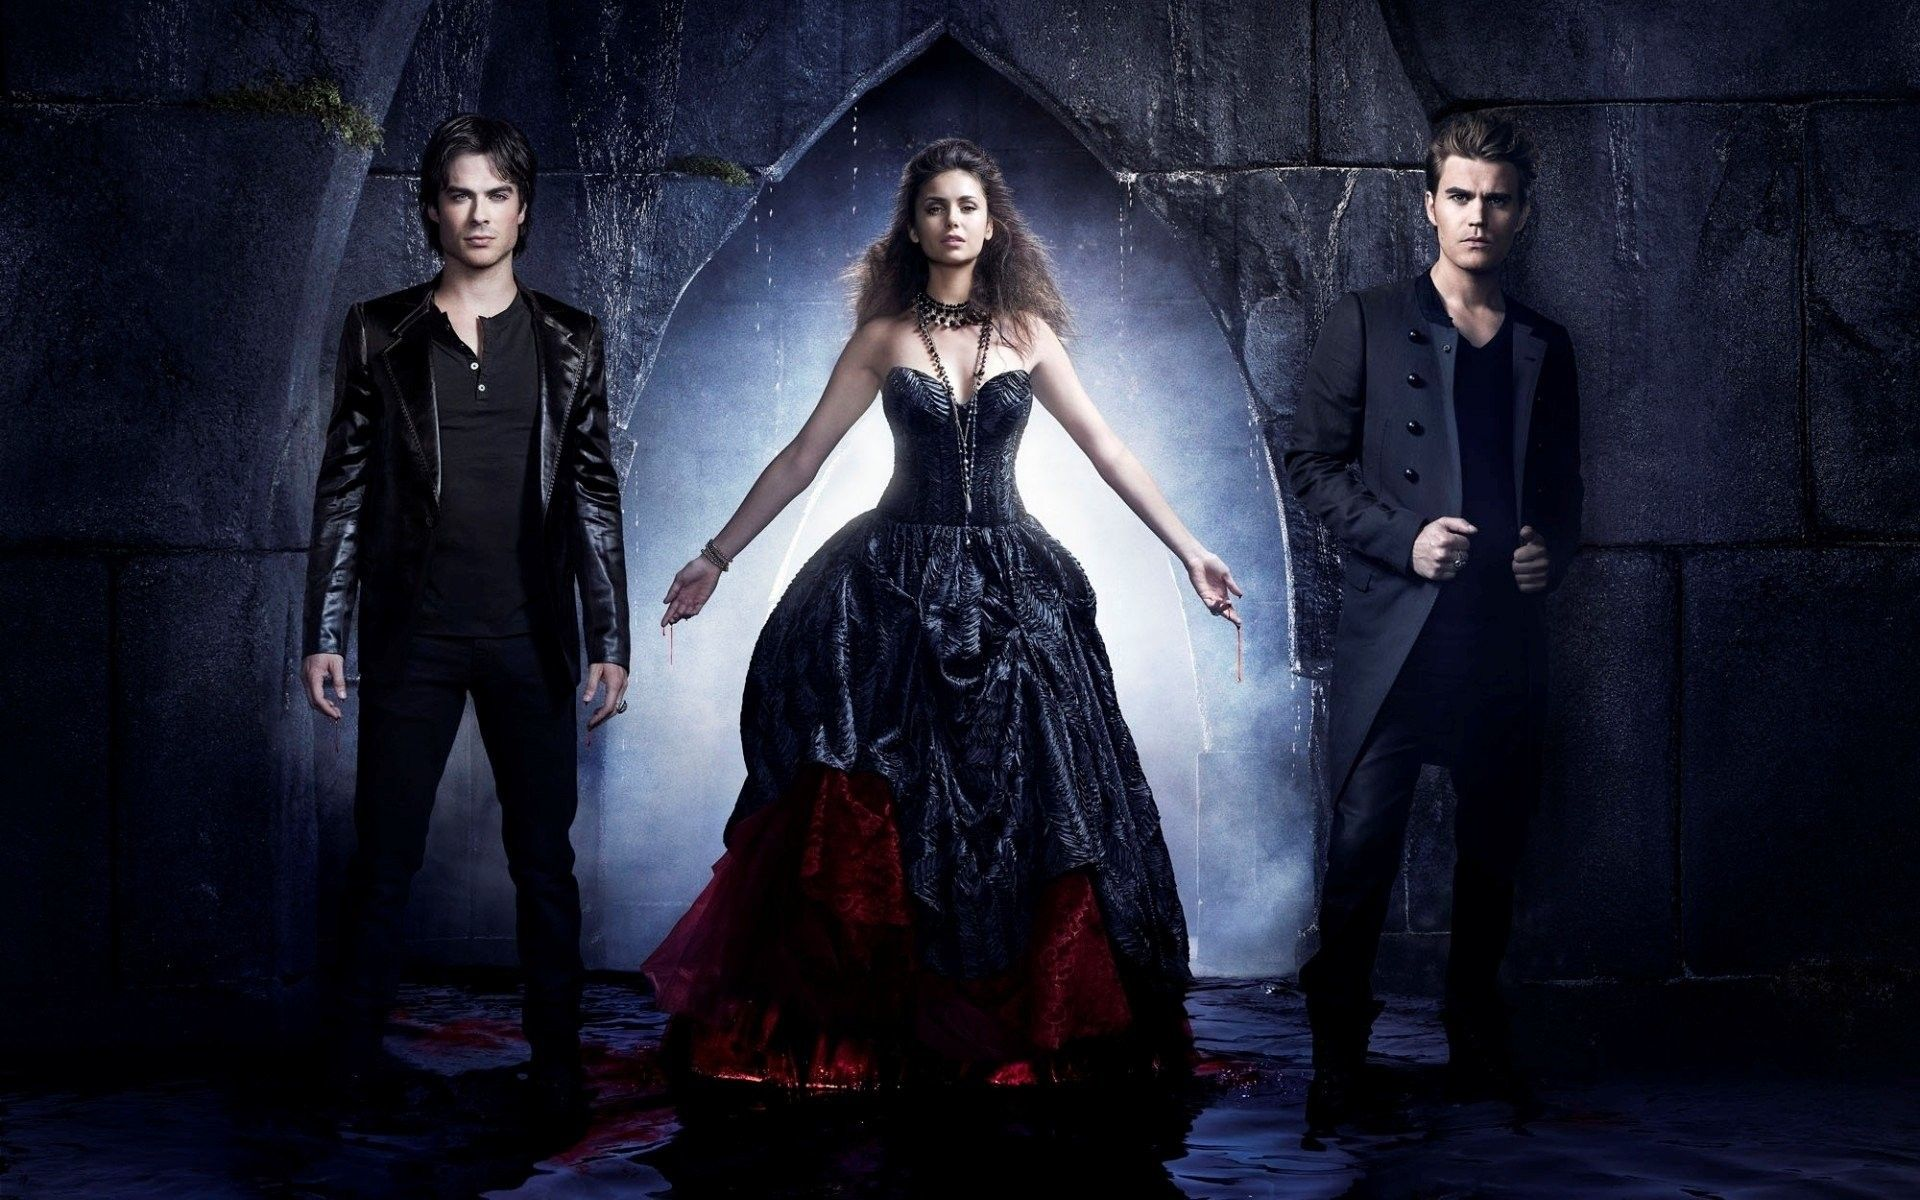 Vampire Diaries Wallpapers - Top Free ...